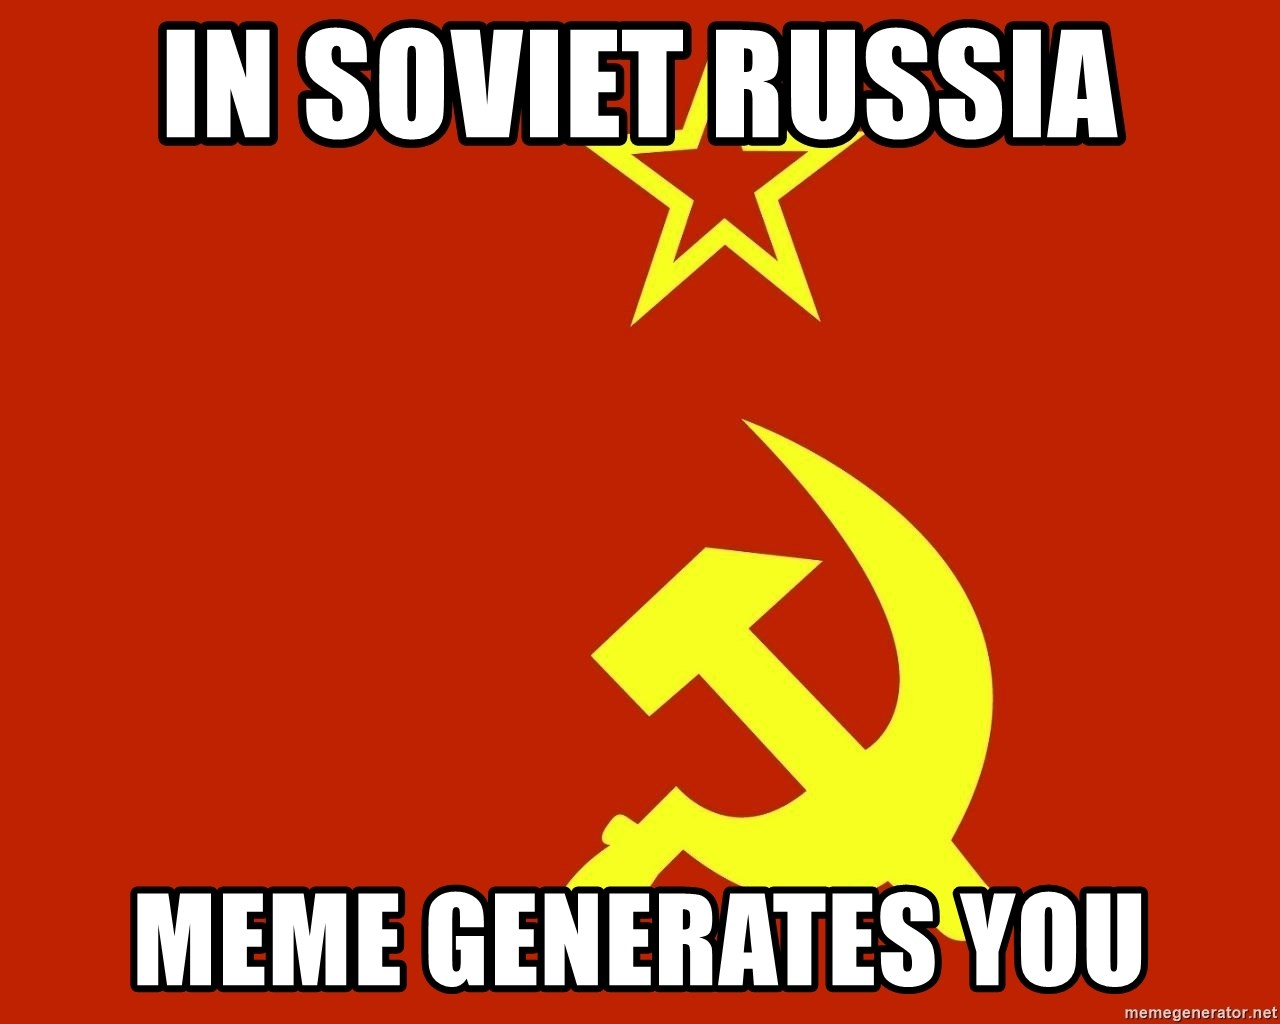 In Soviet Russia - in soviet russia meme generates you